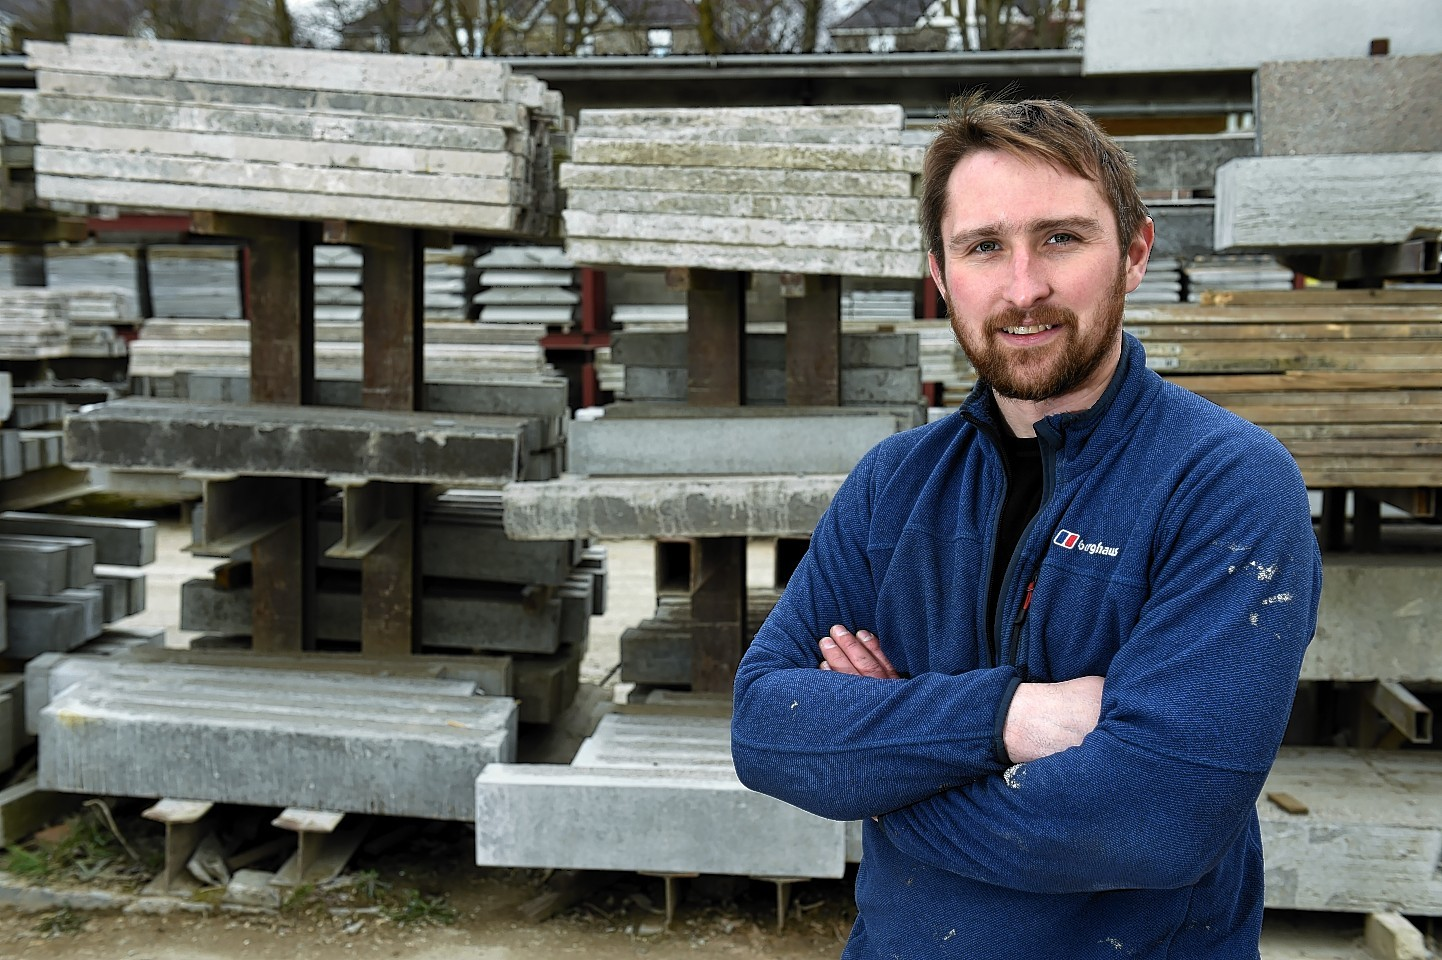 Keithhall Business Park was flooded with 5ft of water in January, Pictured is Jason Adie owner of Inverurie Precast Limited in Inverurie. Picture by KENNY ELRICK